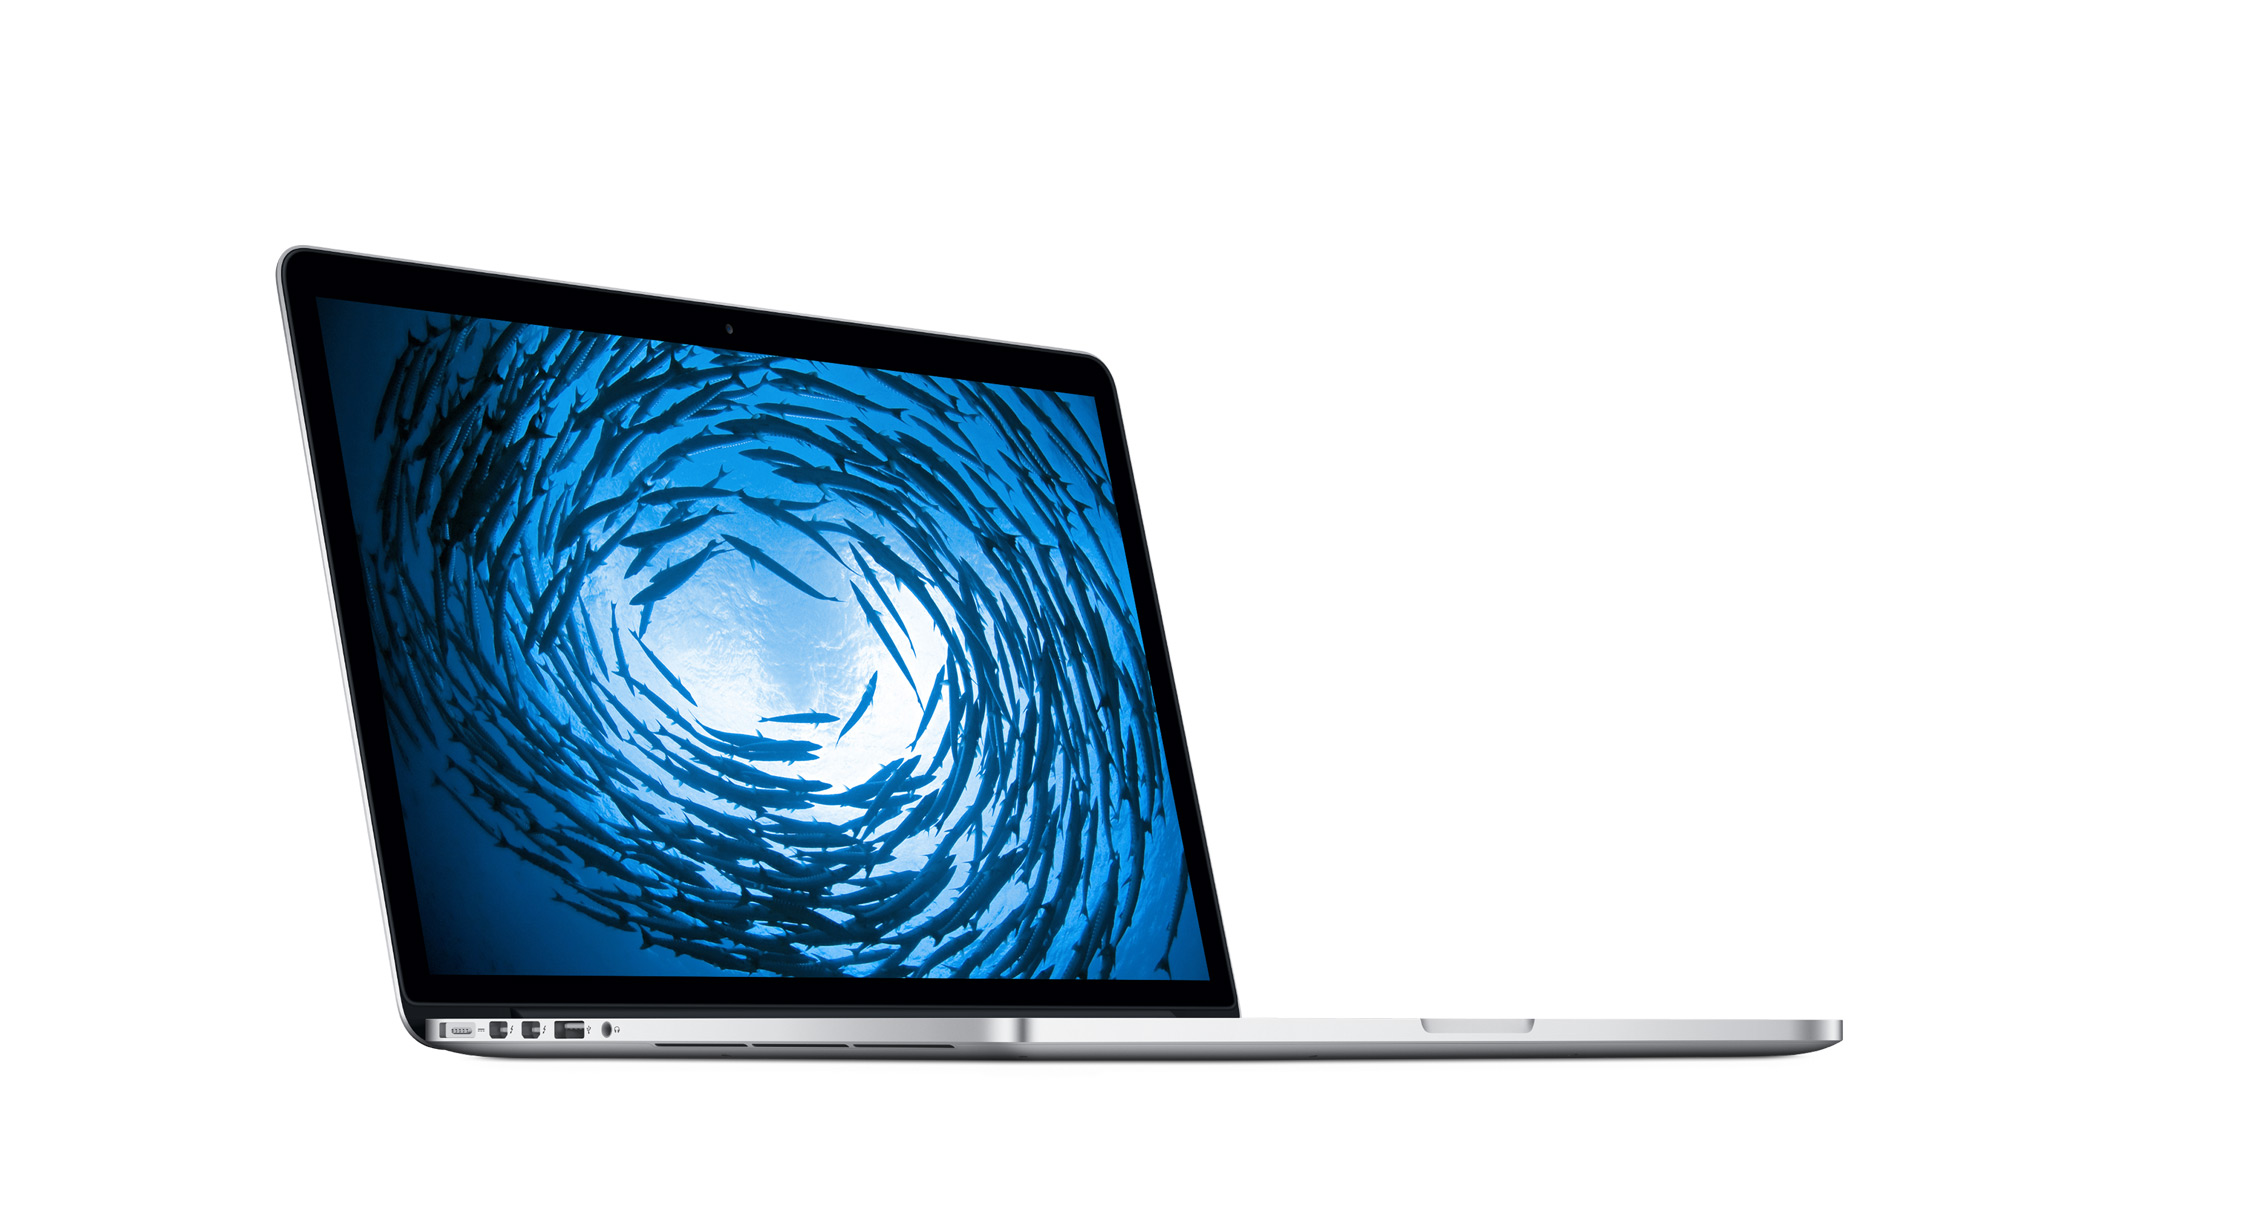 MACBOOK RETINA A1425 I7 2.9GHz